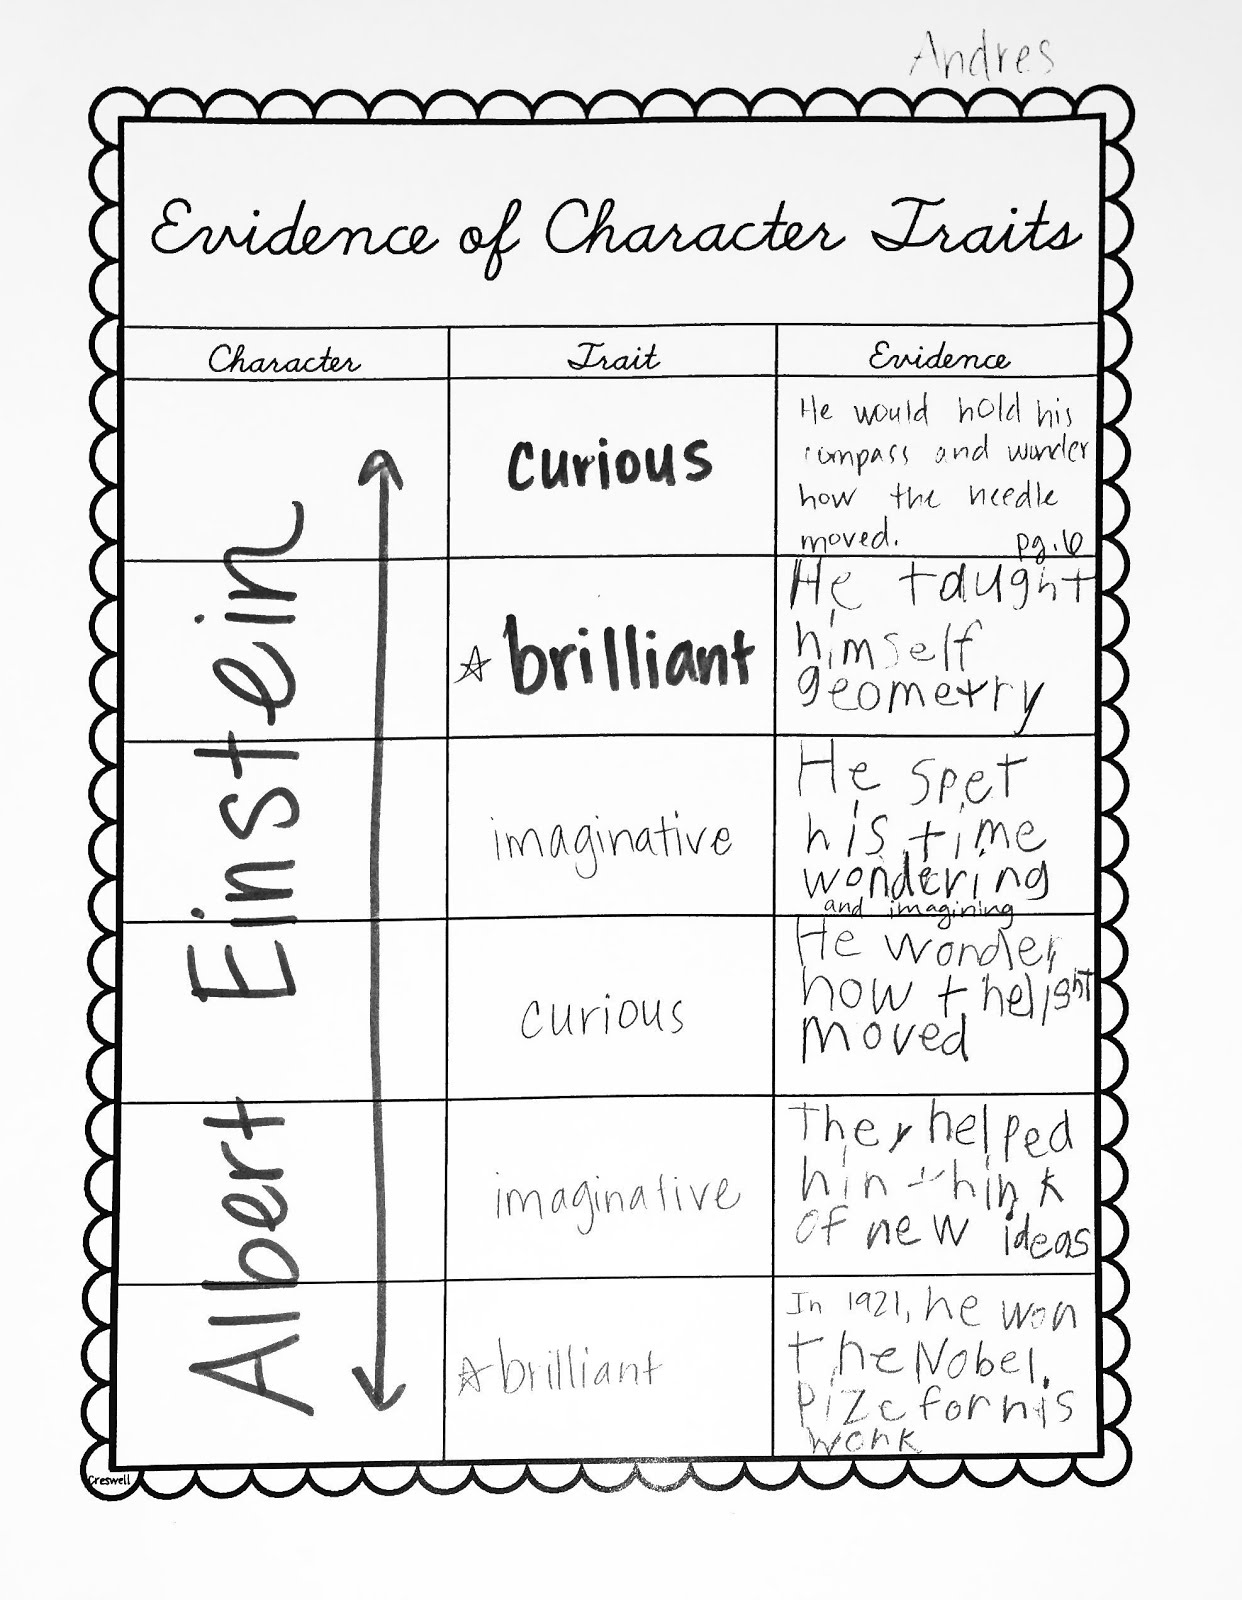 Evidence Of Character Traits